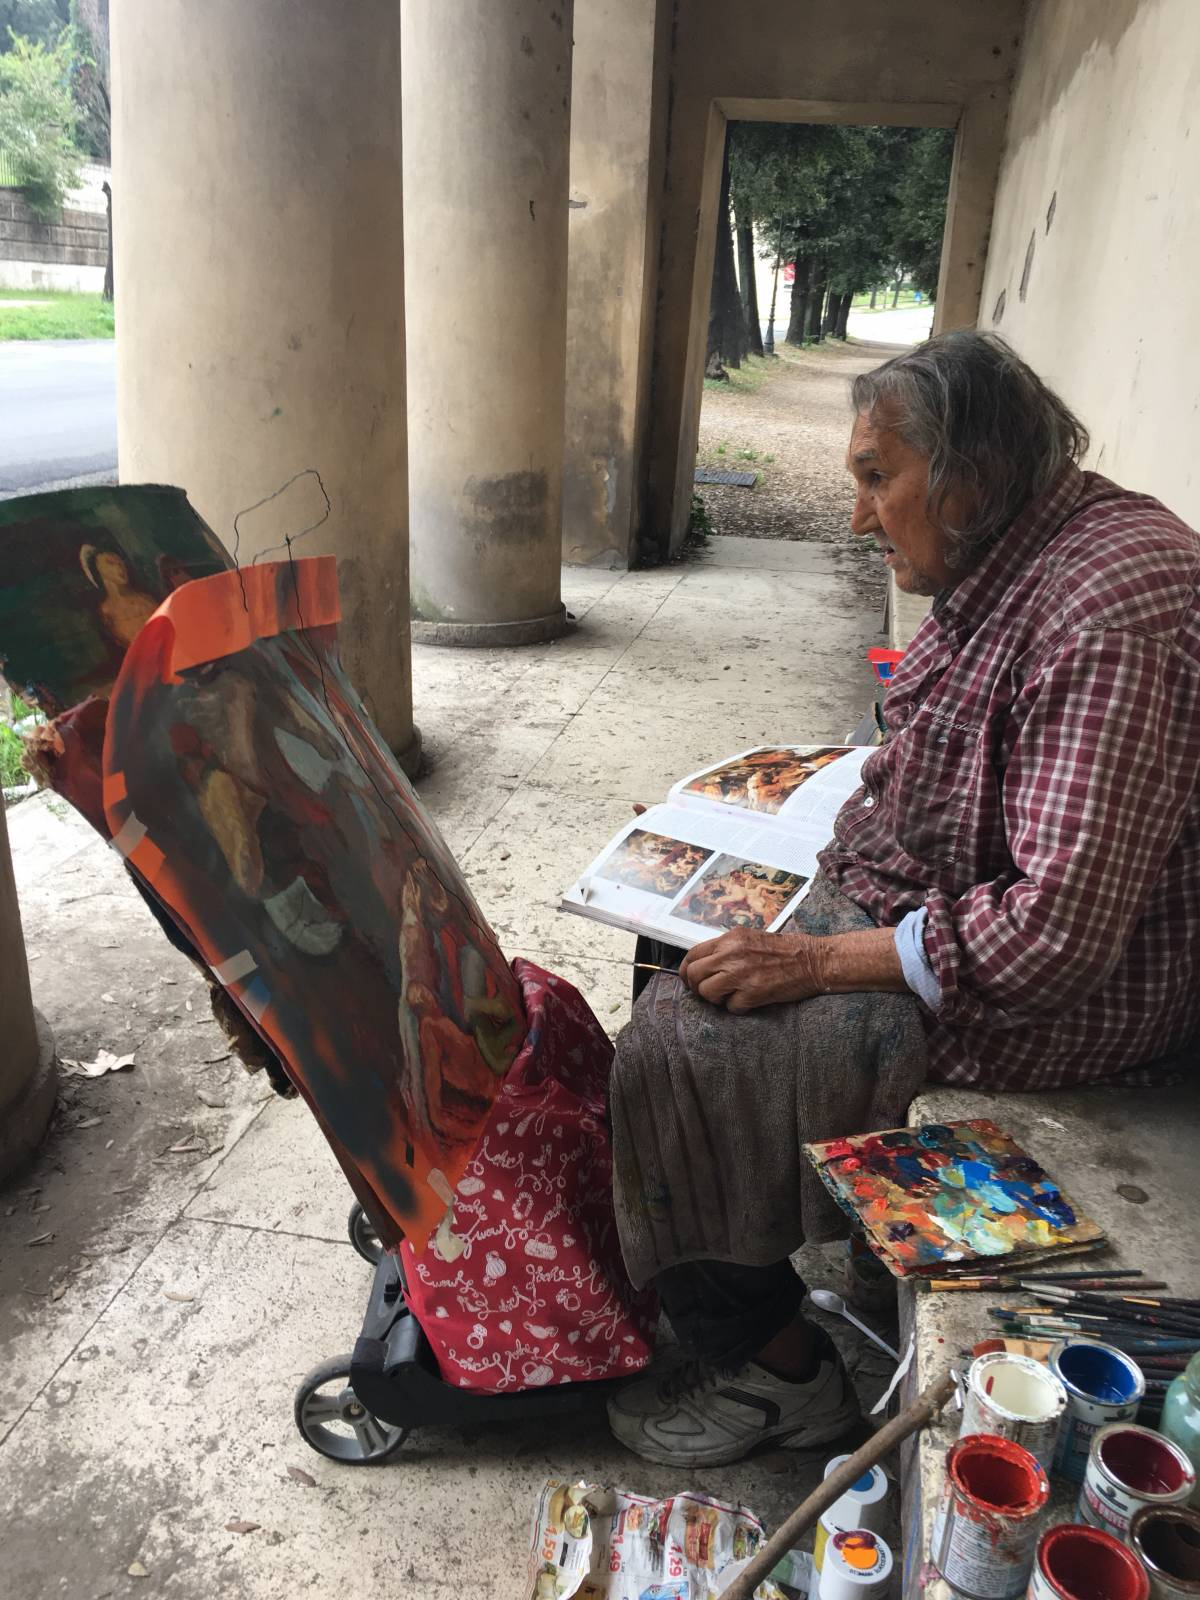 Art and the Pursuit of Joy